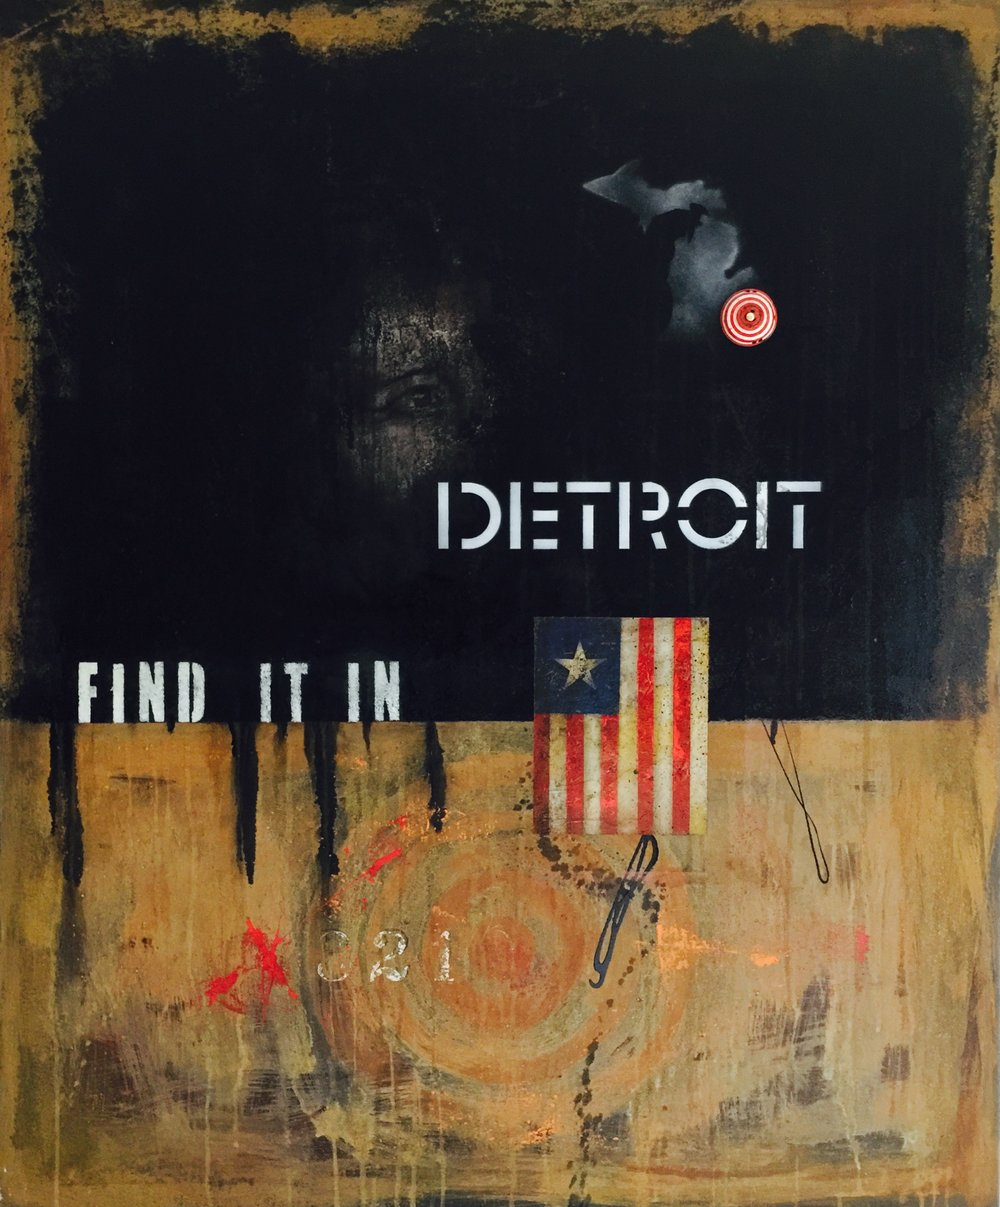 Find it in Detroit